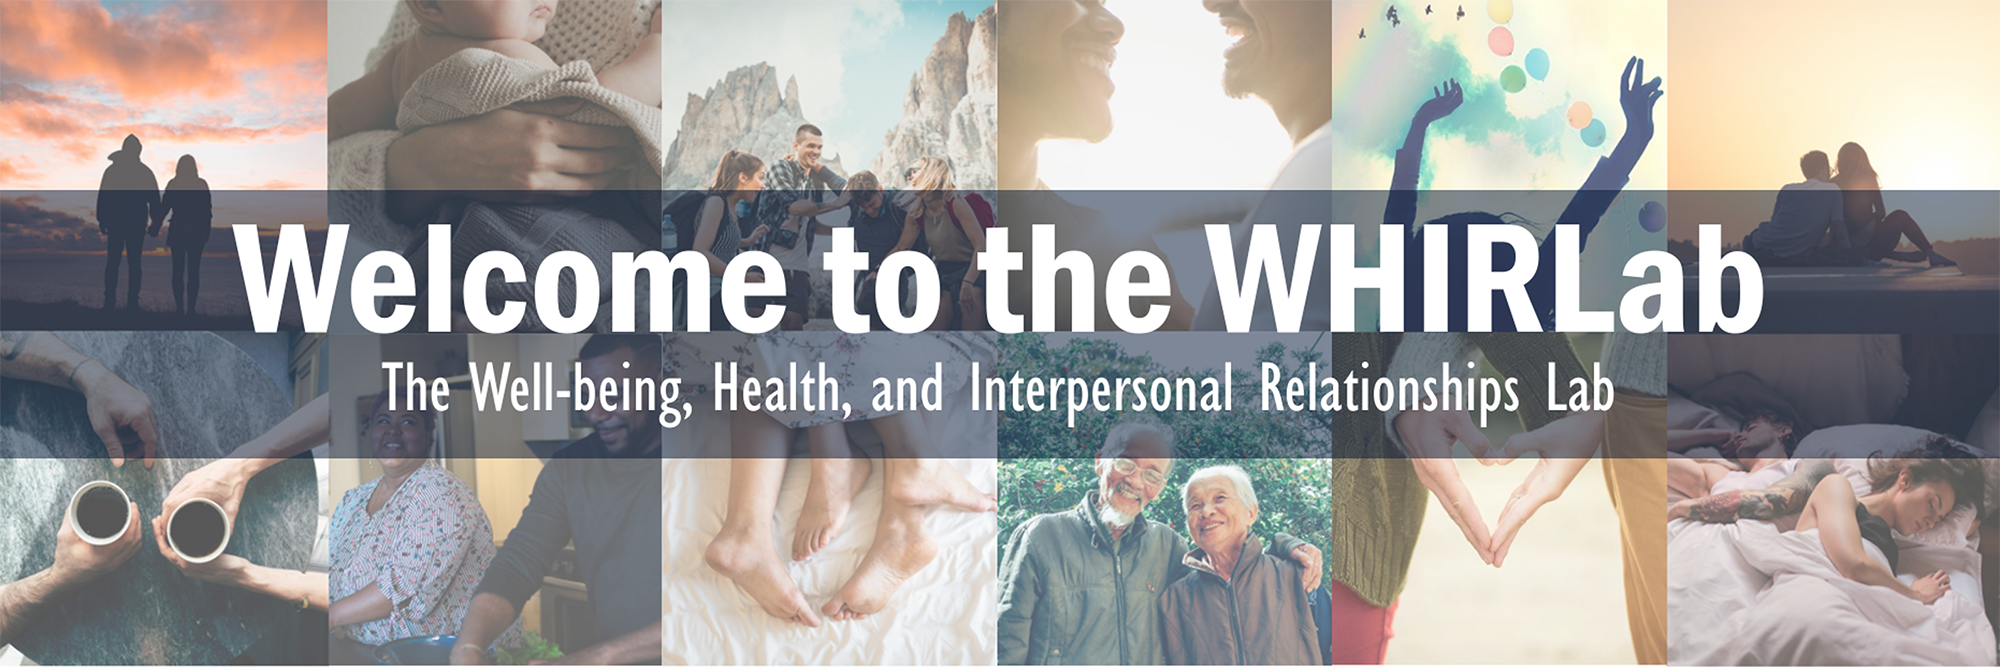 Welcome to the WHIRLab.  The Well-being, Health, and Interpersonal Relationships Lab.  This is a welcome banner image with people experiencing wellness and relationships.